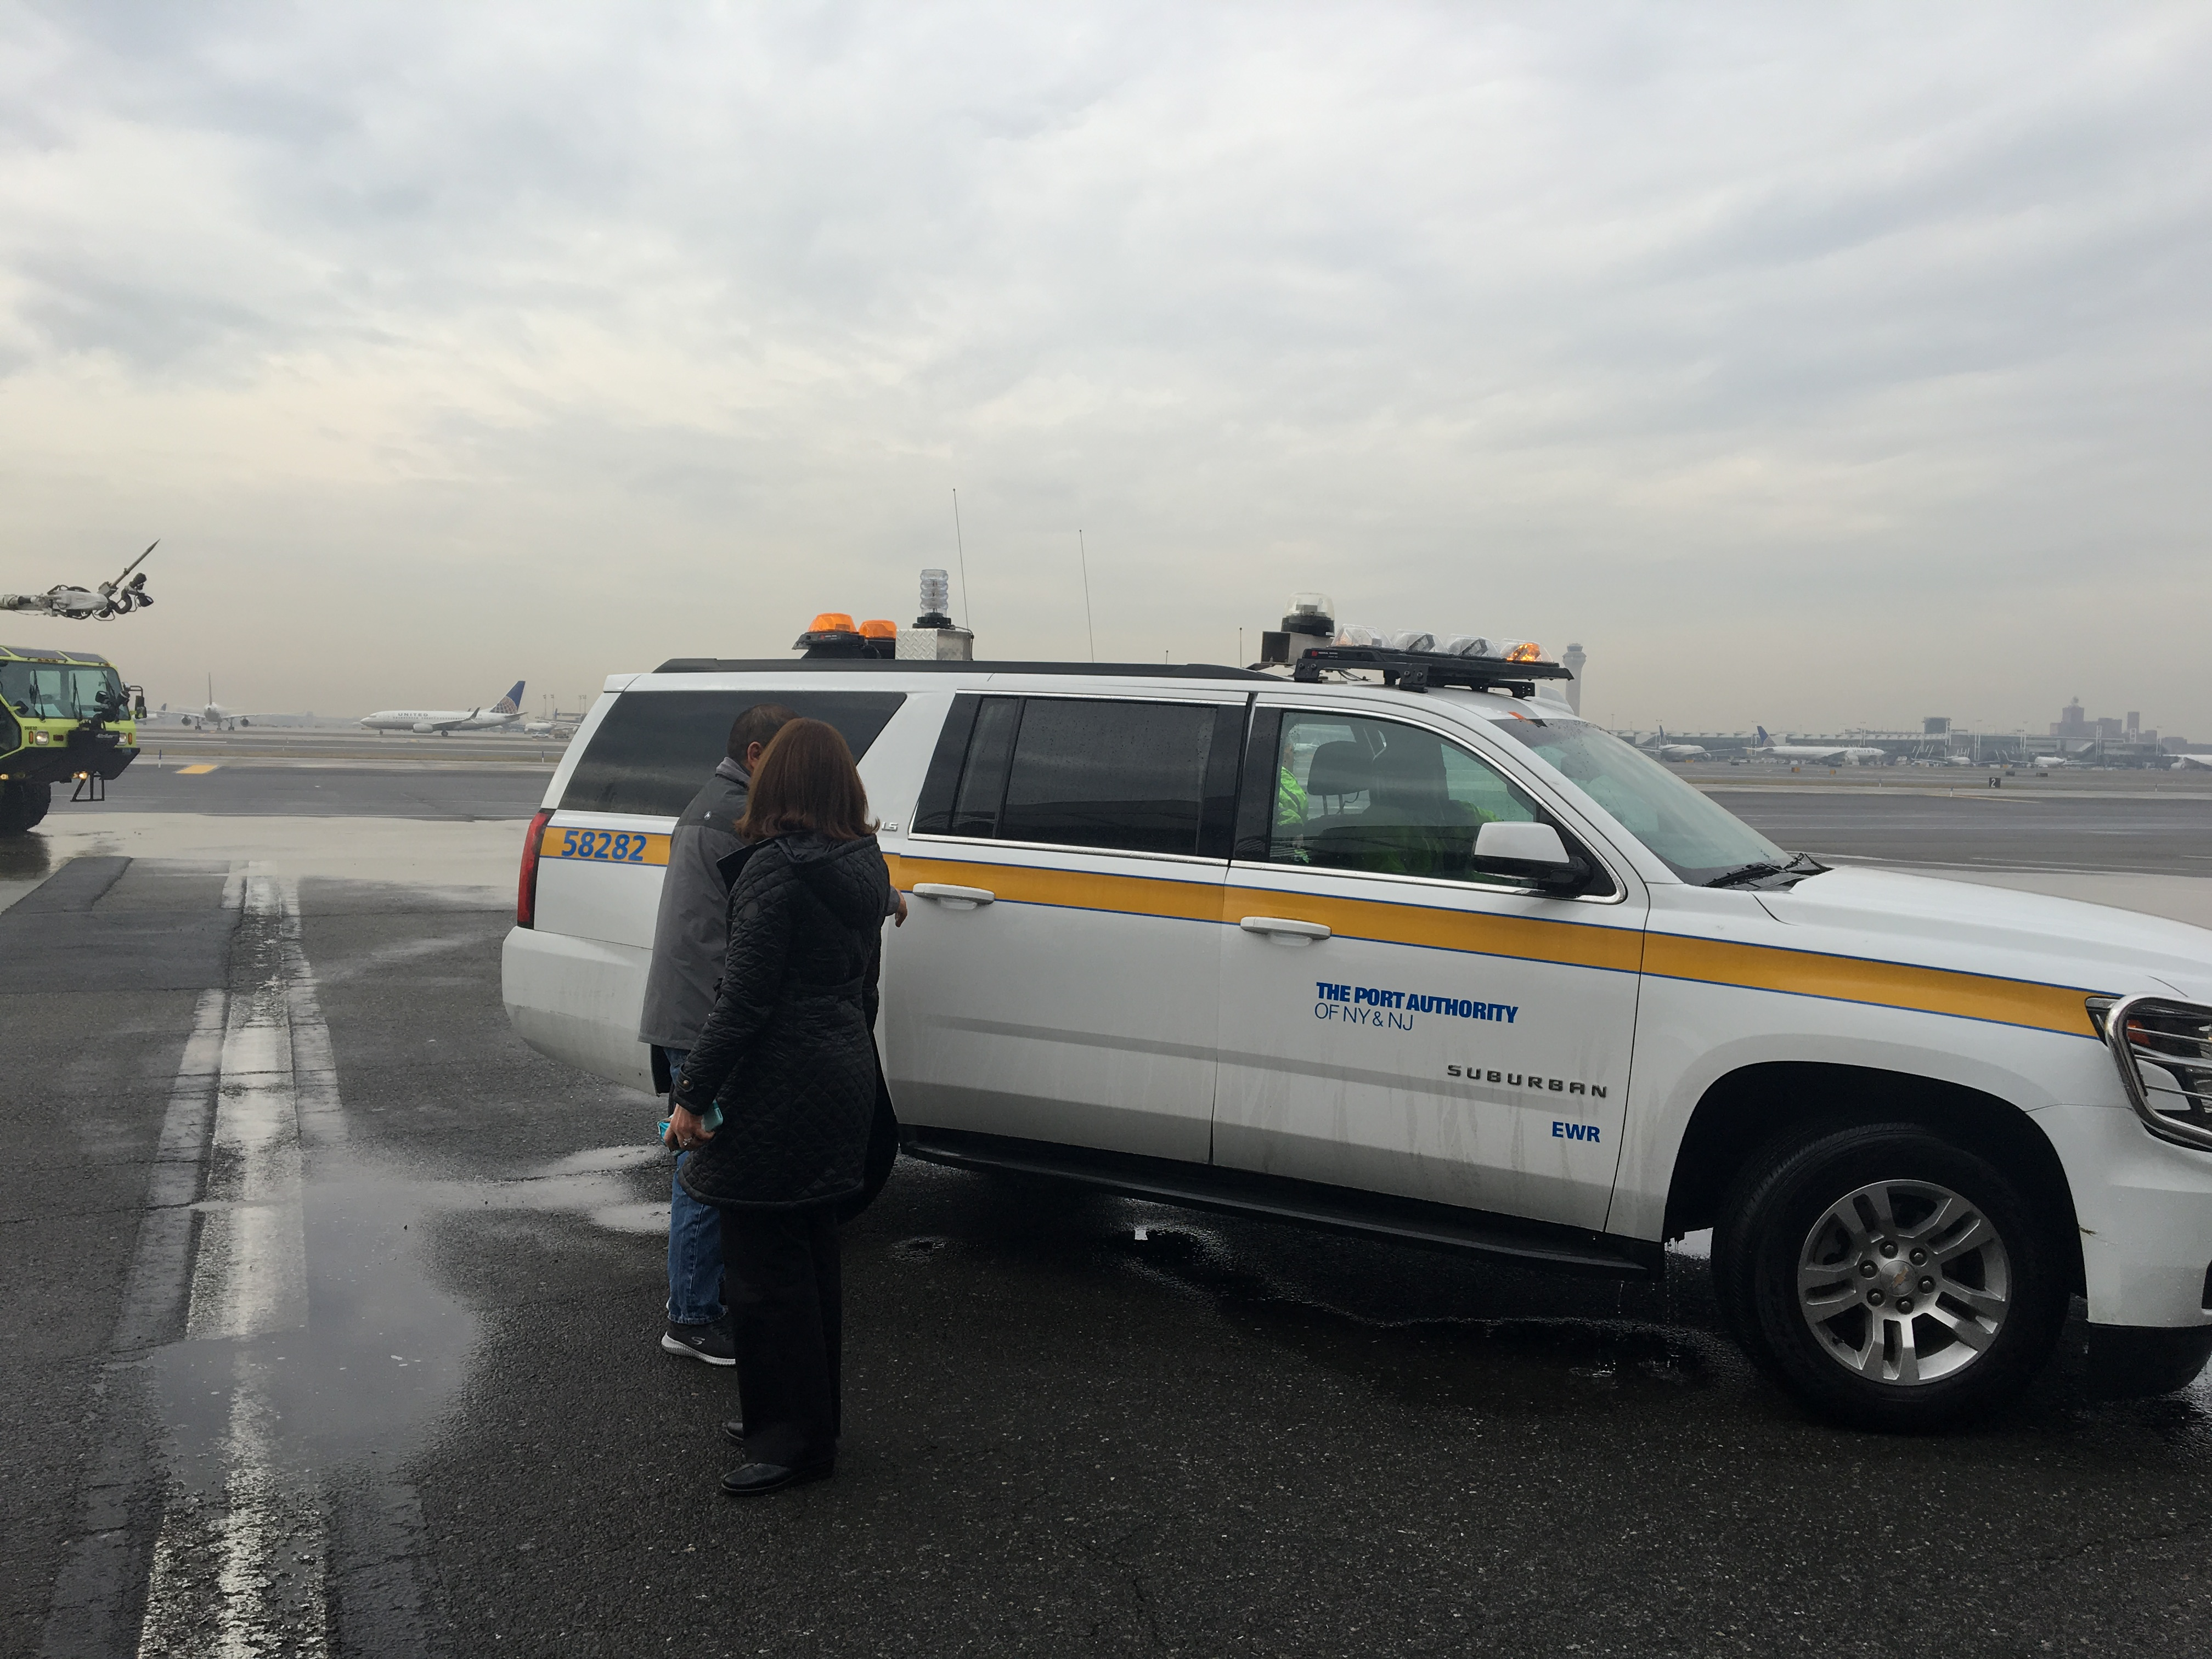 After Years in Flight Newark Liberty GM Opts for a Ground Stop